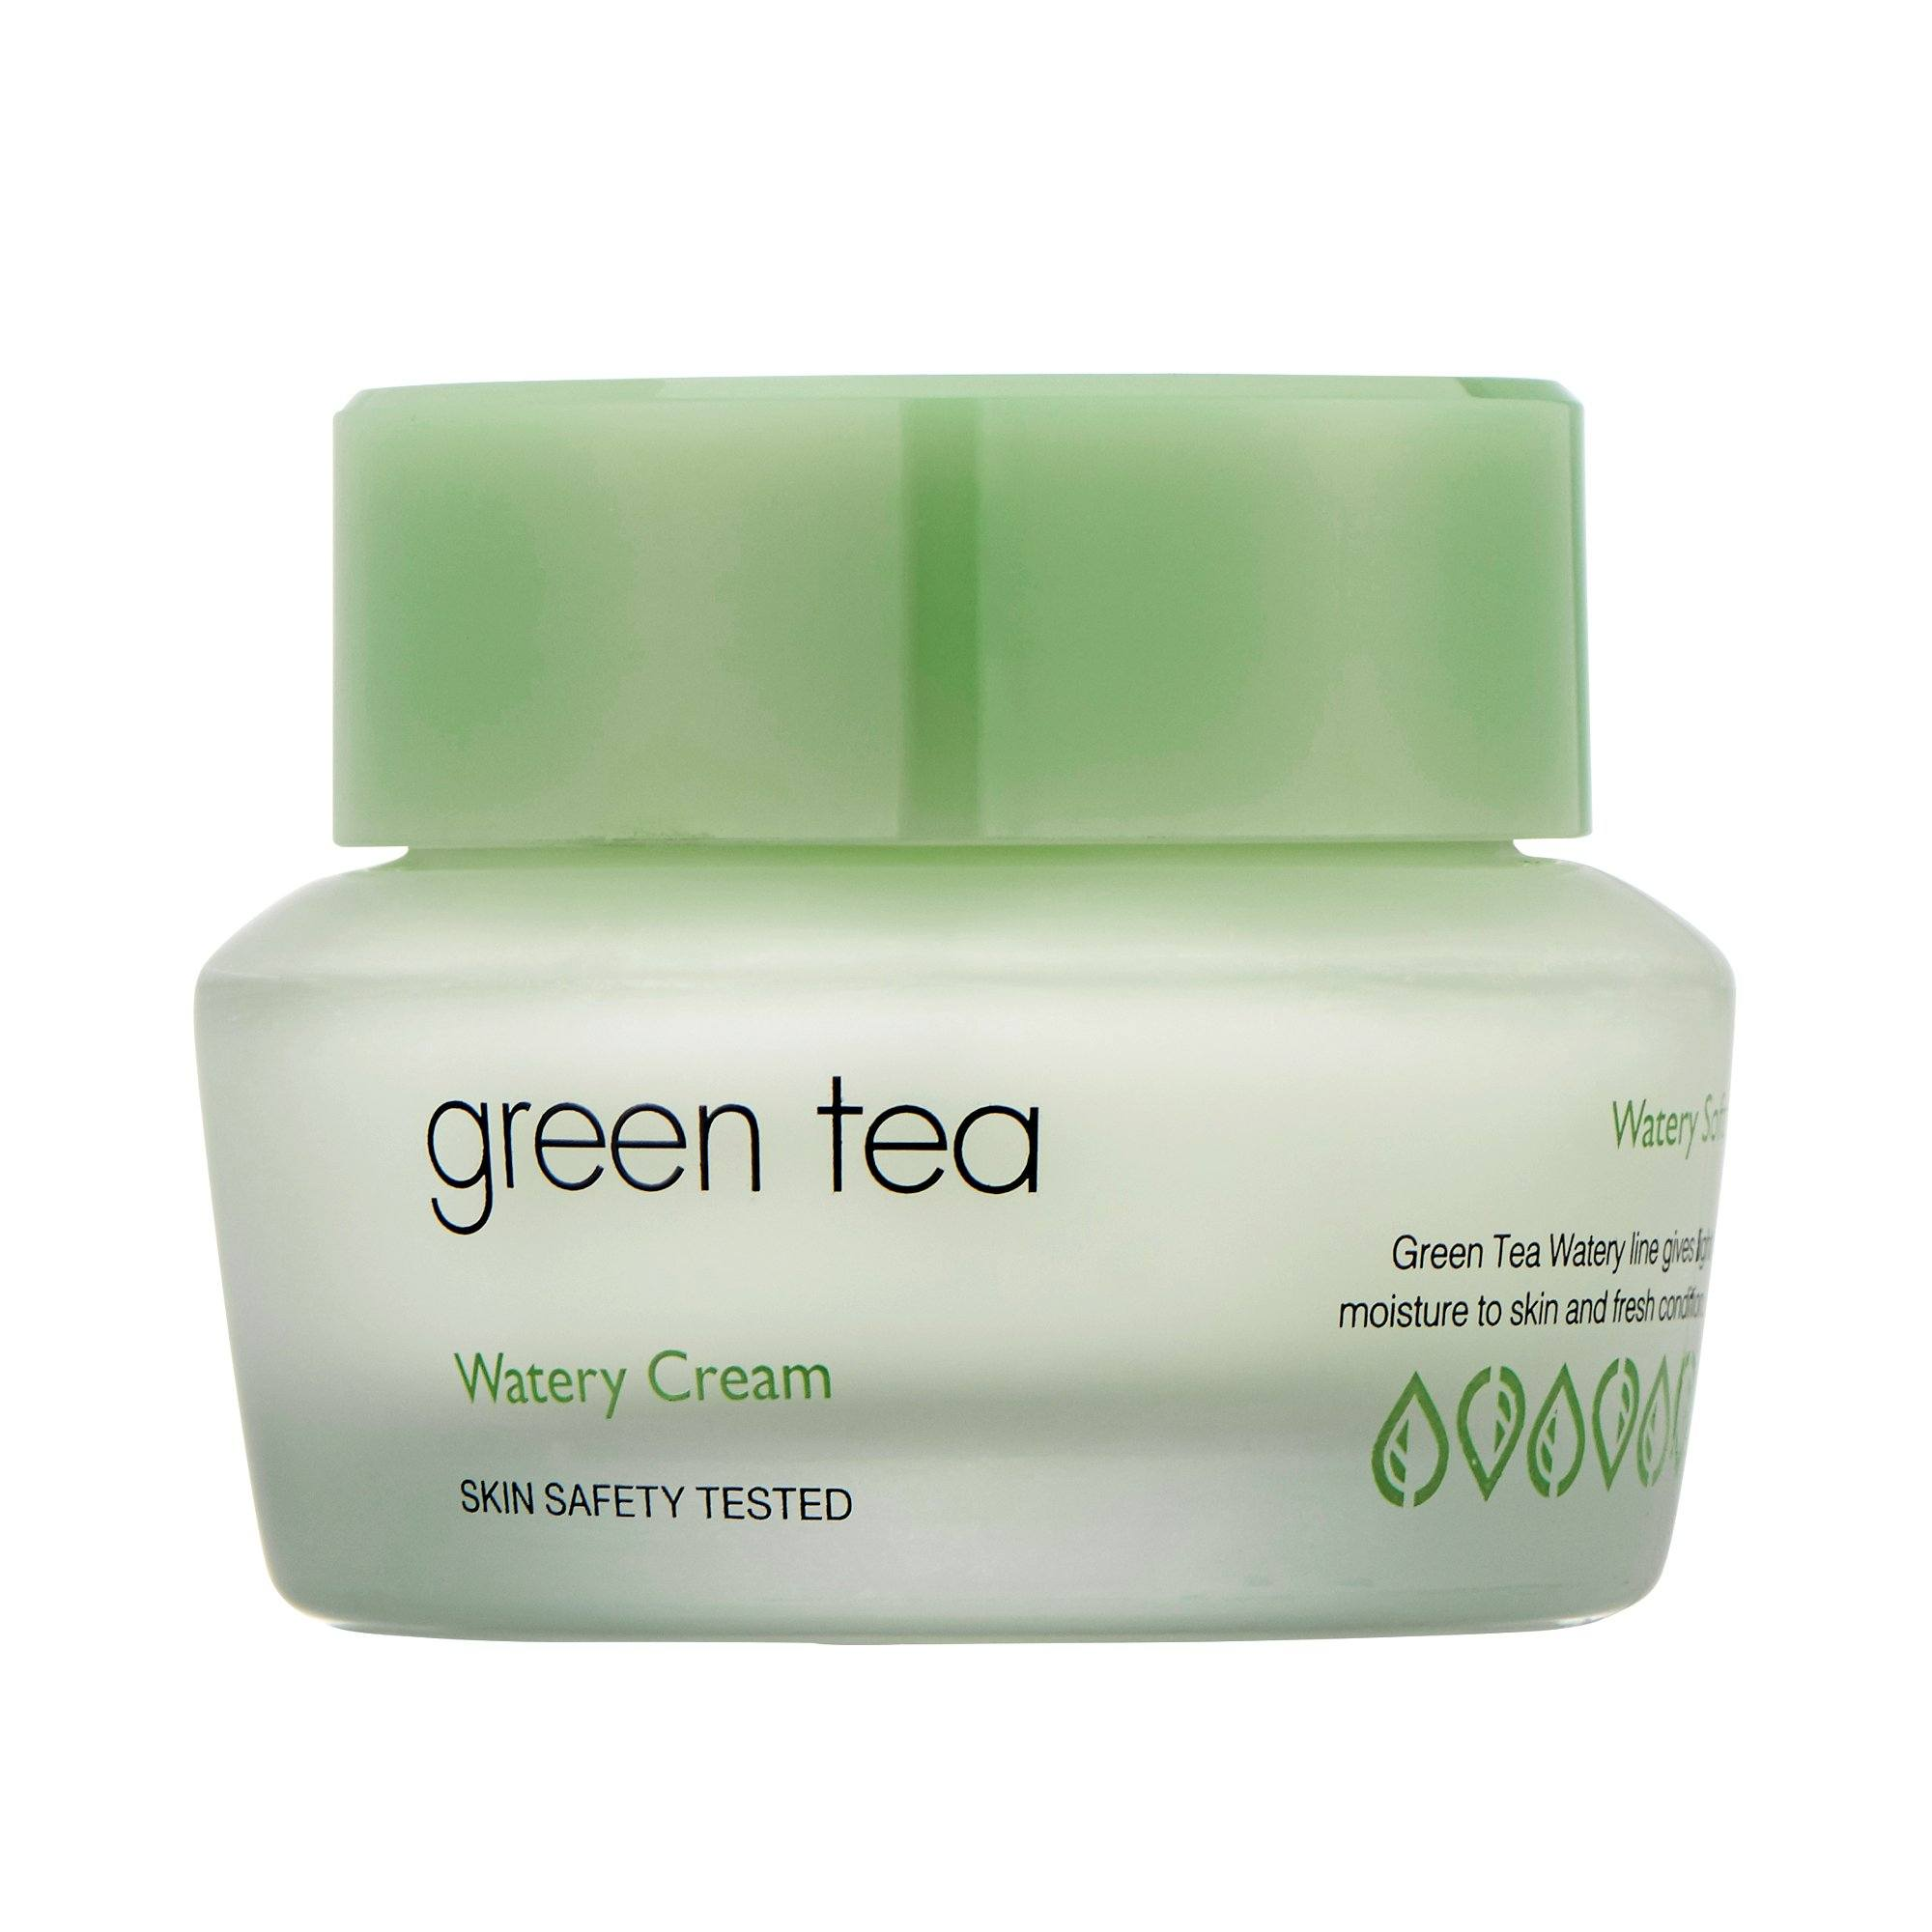 Health & Beauty > Personal Care > Cosmetics > Skin Care > Lotion & Moisturizer - Green Tea Watery Cream Krem Do Twarzy 50 Ml